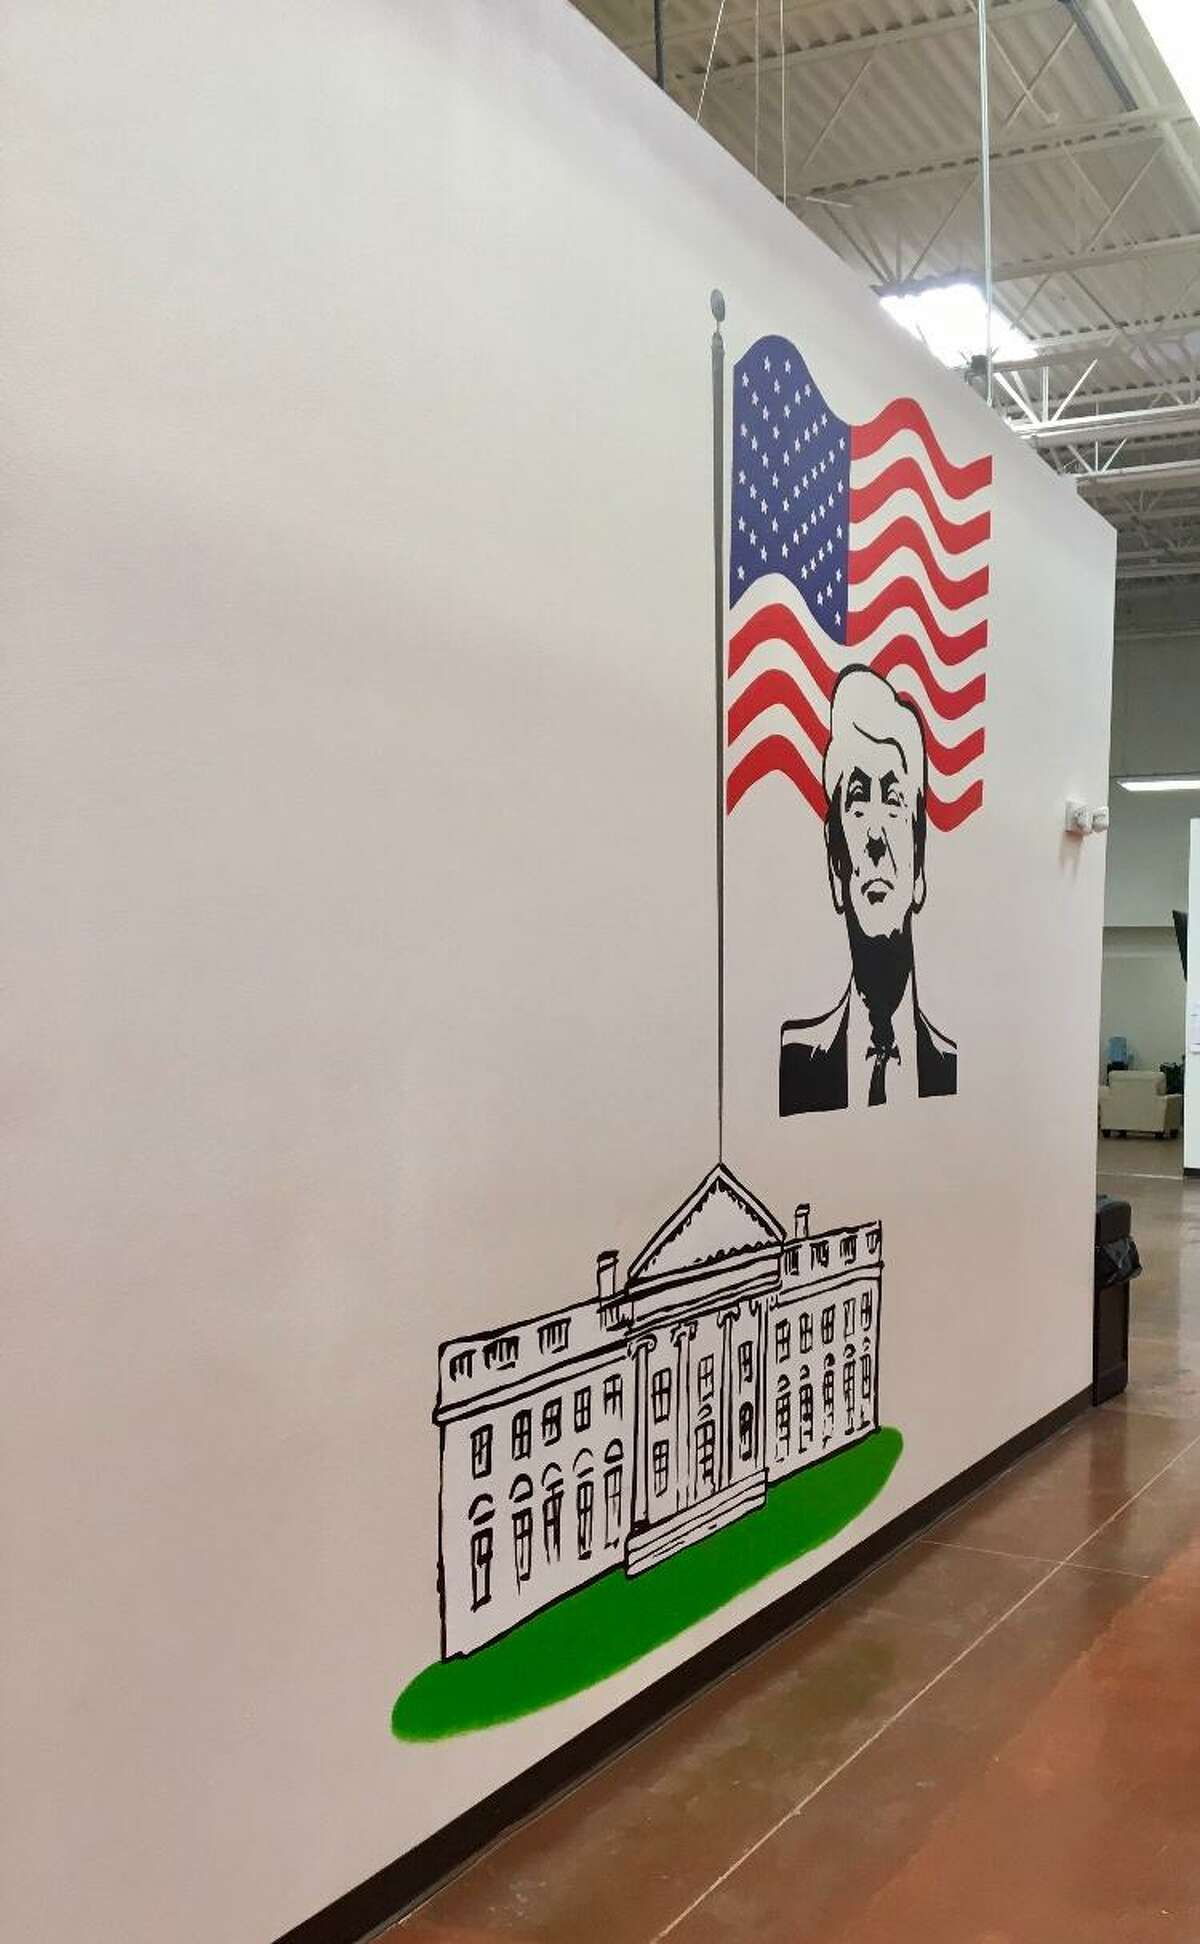 One of the largest shelters for unaccompanied minors in Texas includes a wall-sized mural of President Donald Trump.